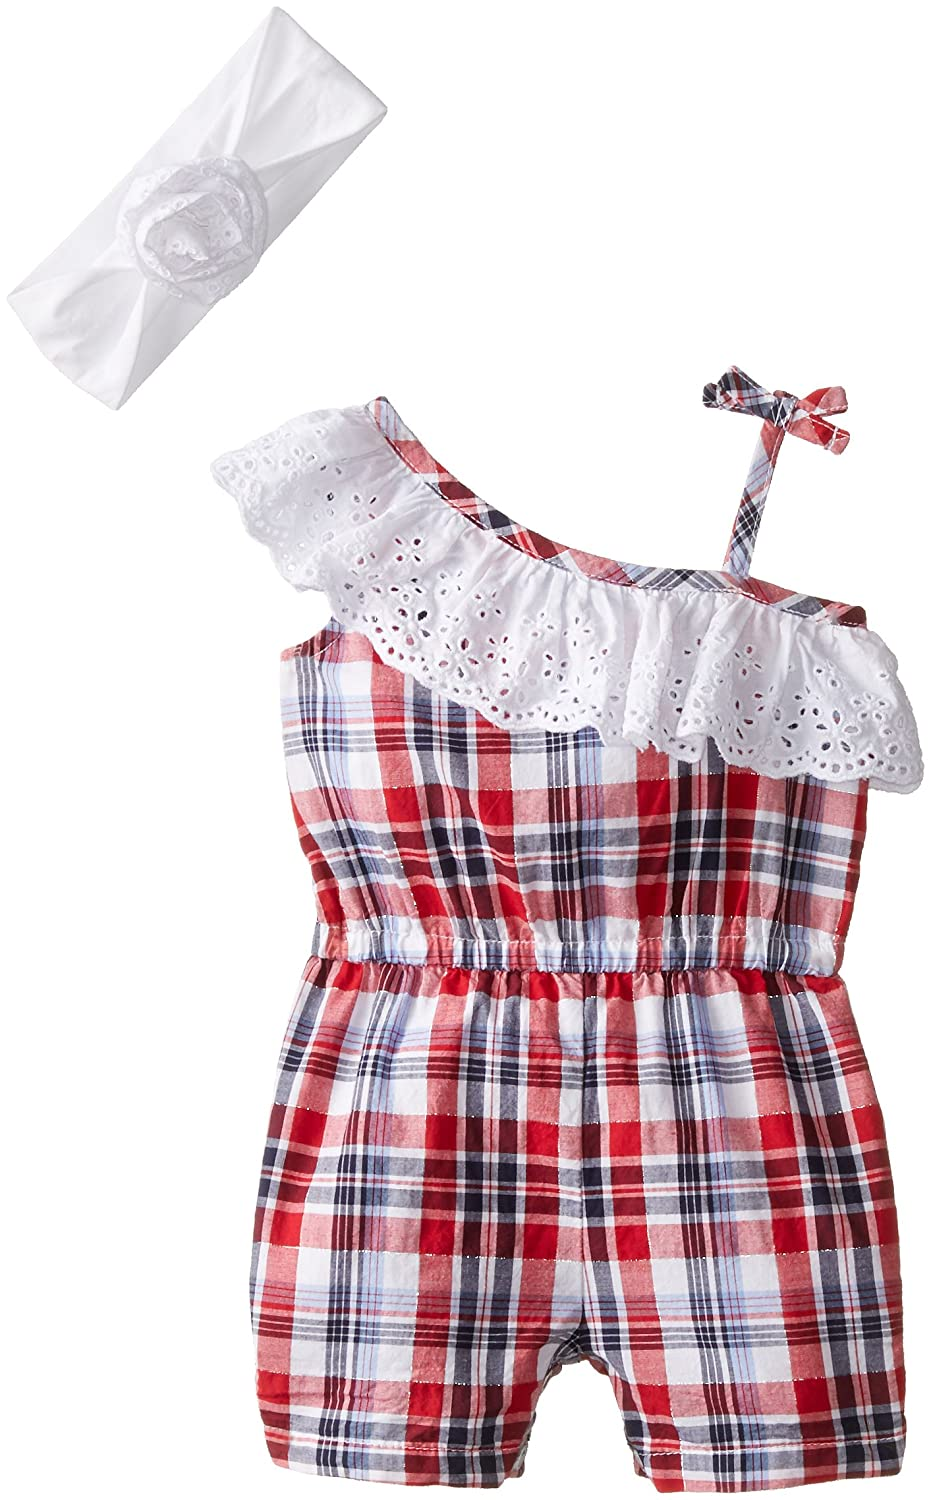 The Children's Place Baby-Girls Newborn Americana Plaid Romper and Headwrap Set newborn baby boy girl infant warm cotton outfit jumpsuit romper bodysuit clothes